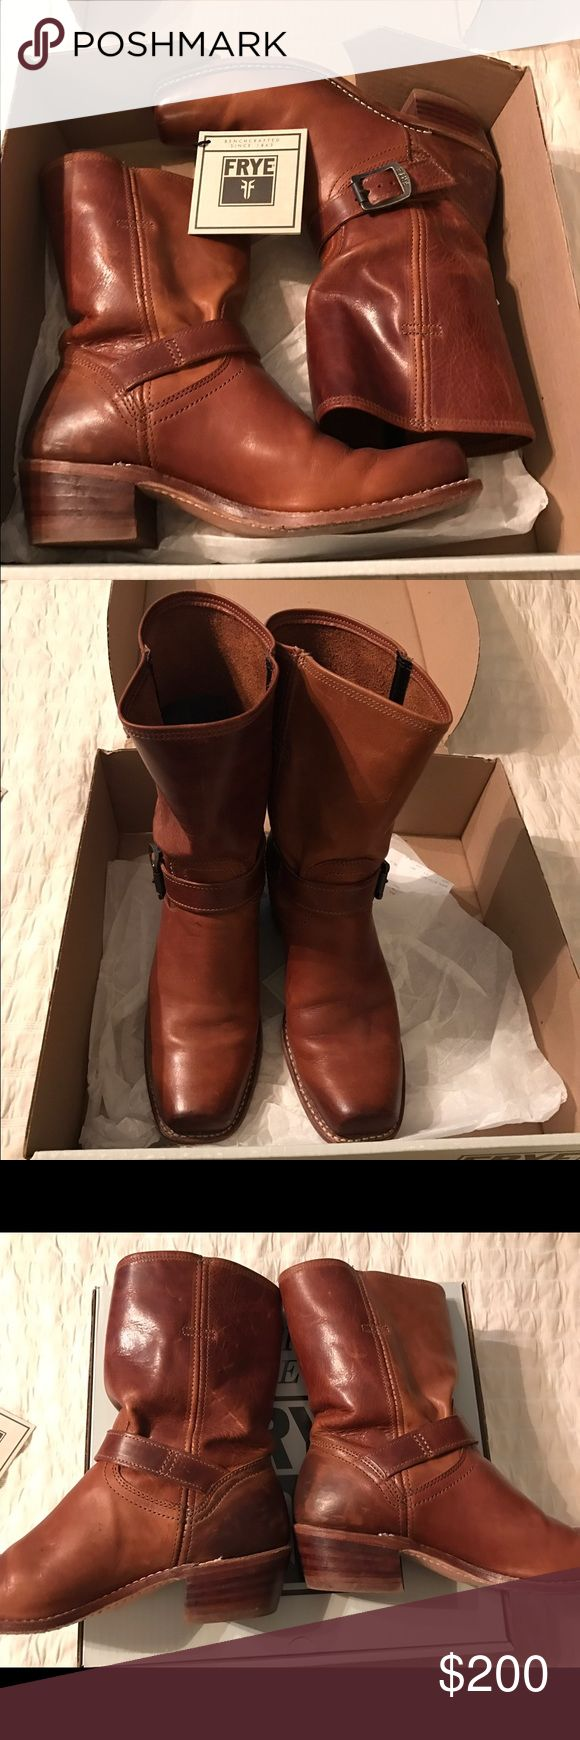 Frye Cavalry Strap 8L Boots - Cognac sz 9 Frye Cavalry Strap 8L Boots - Cognac sz 9. Beautiful boots in excellent condition, I just don't reach for them anymore. Super comfortable and they go with everything! Frye Shoes Heeled Boots